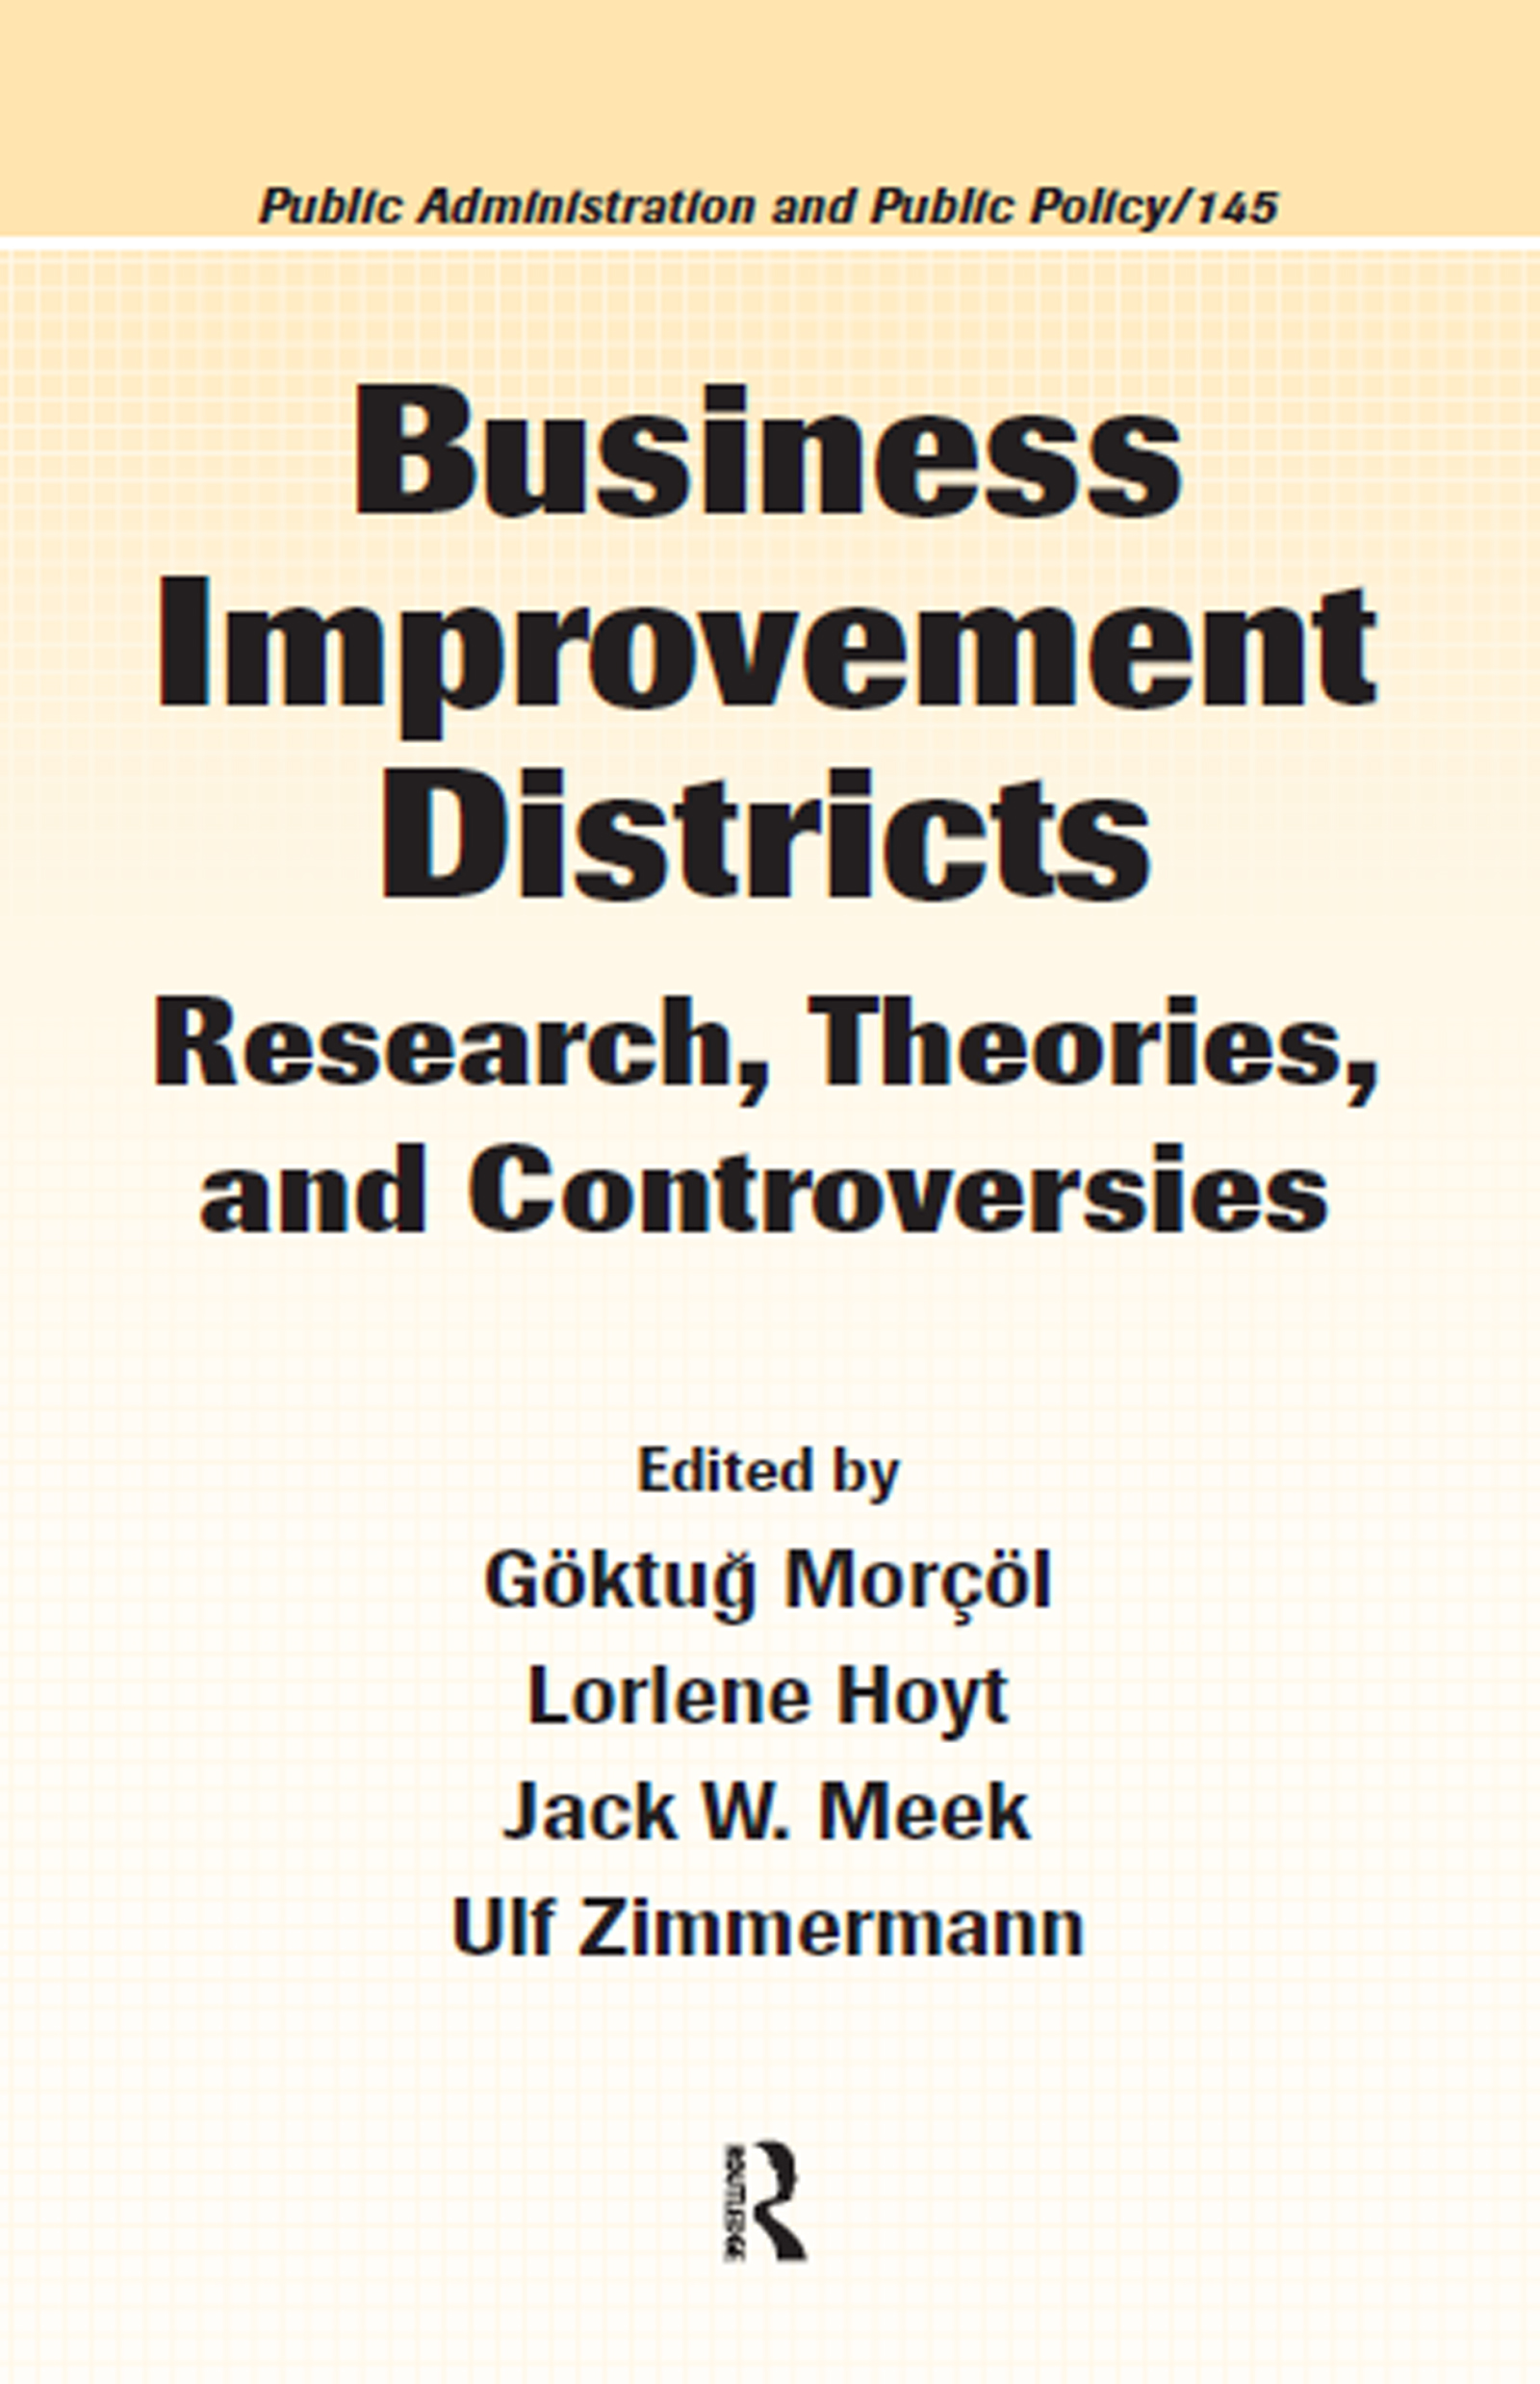 Business Improvement Districts: Research, Theories, and Controversies book cover